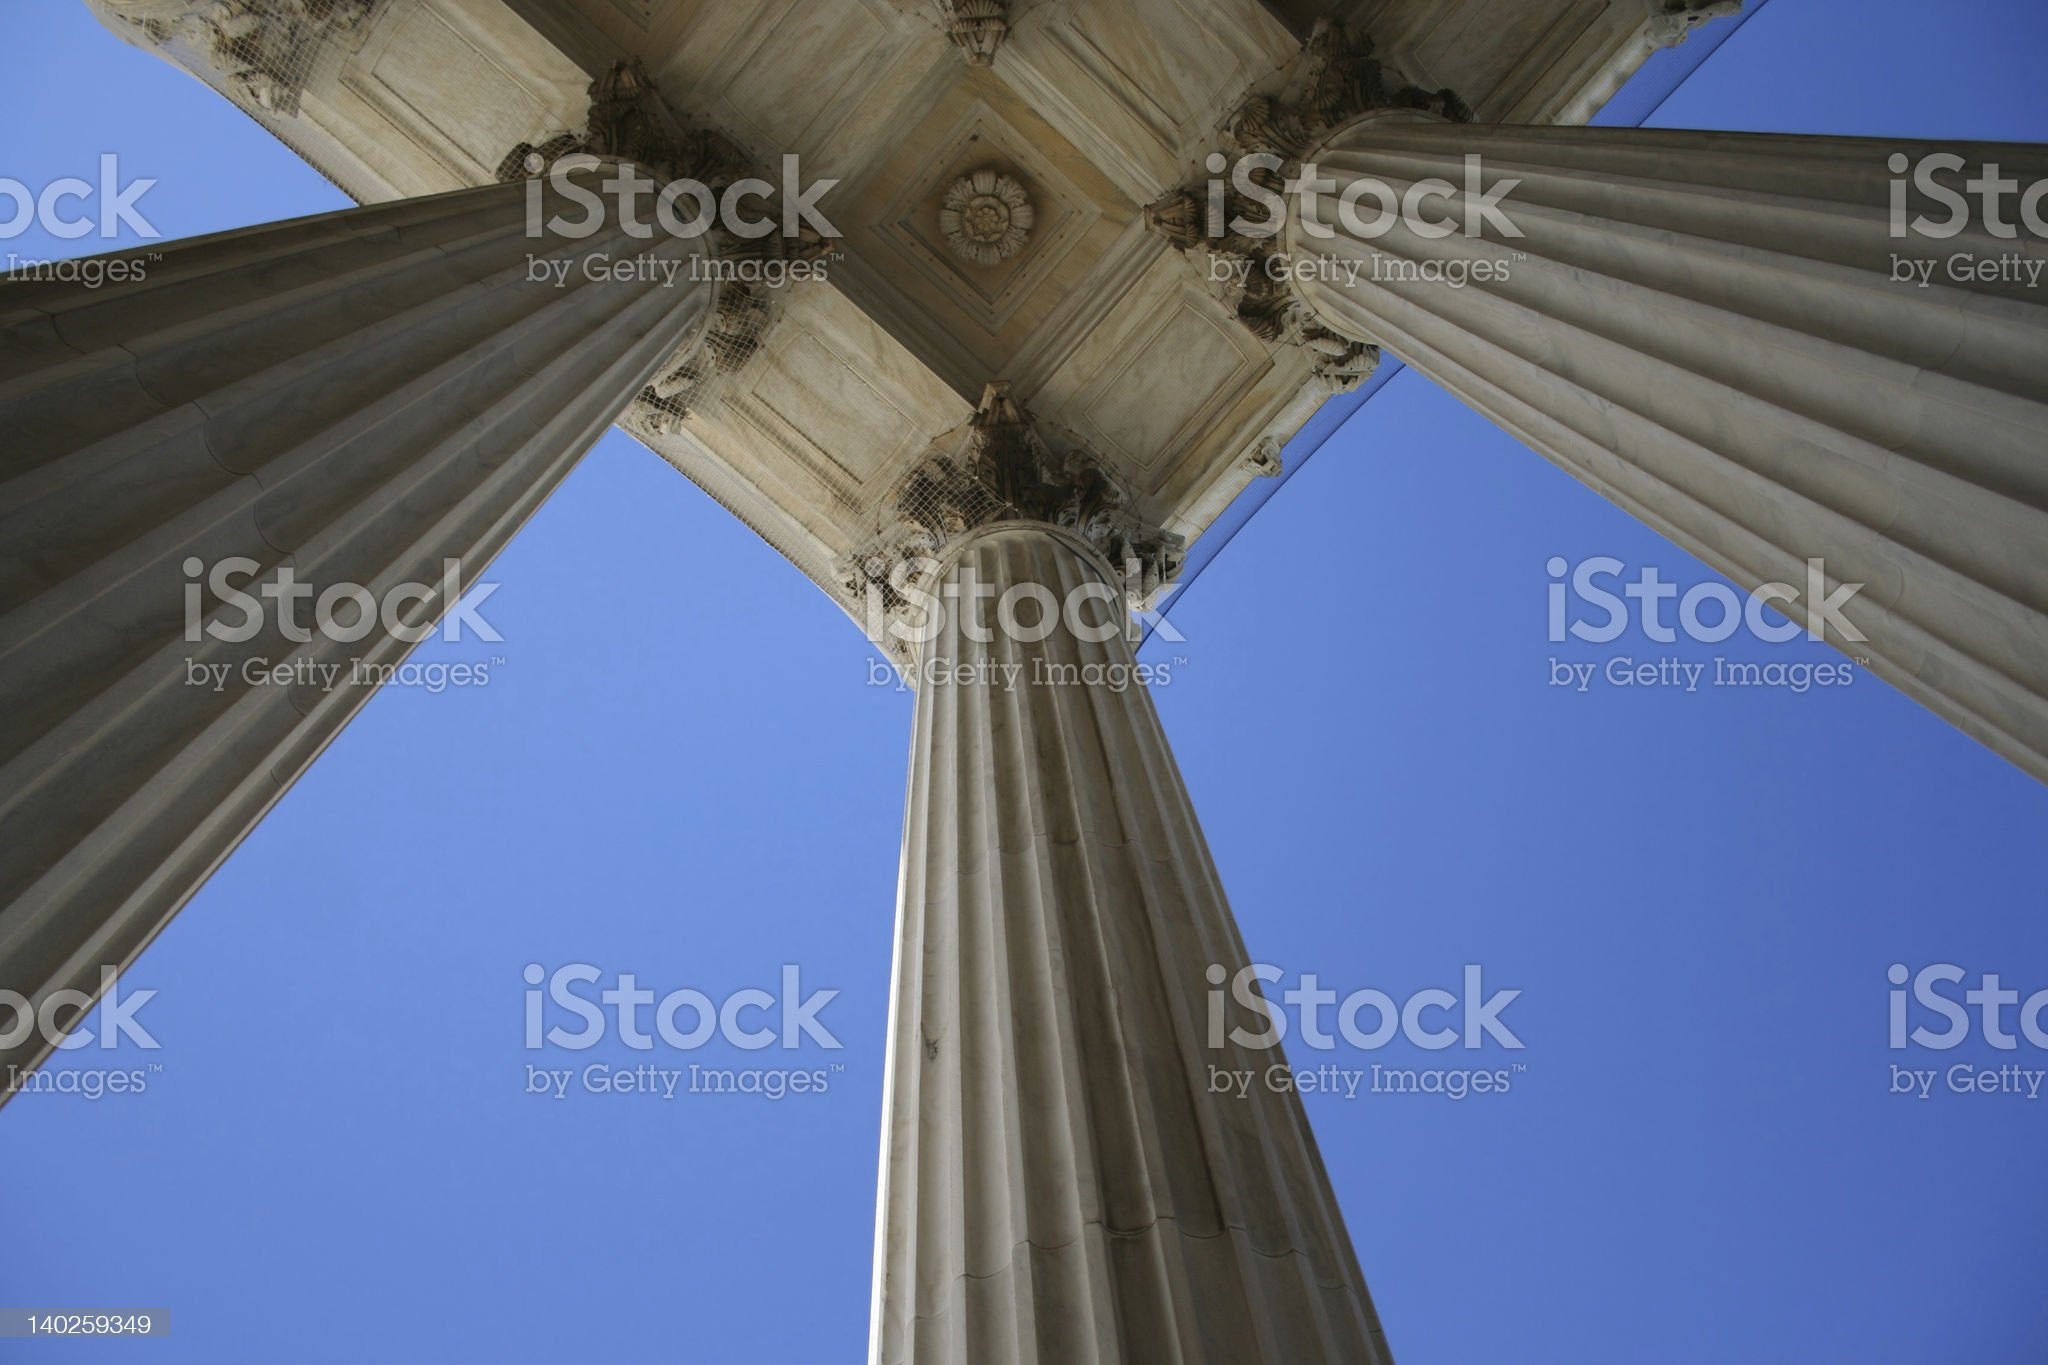 Looking up at the marble columns of the Supreme Court  royalty-free stock photo